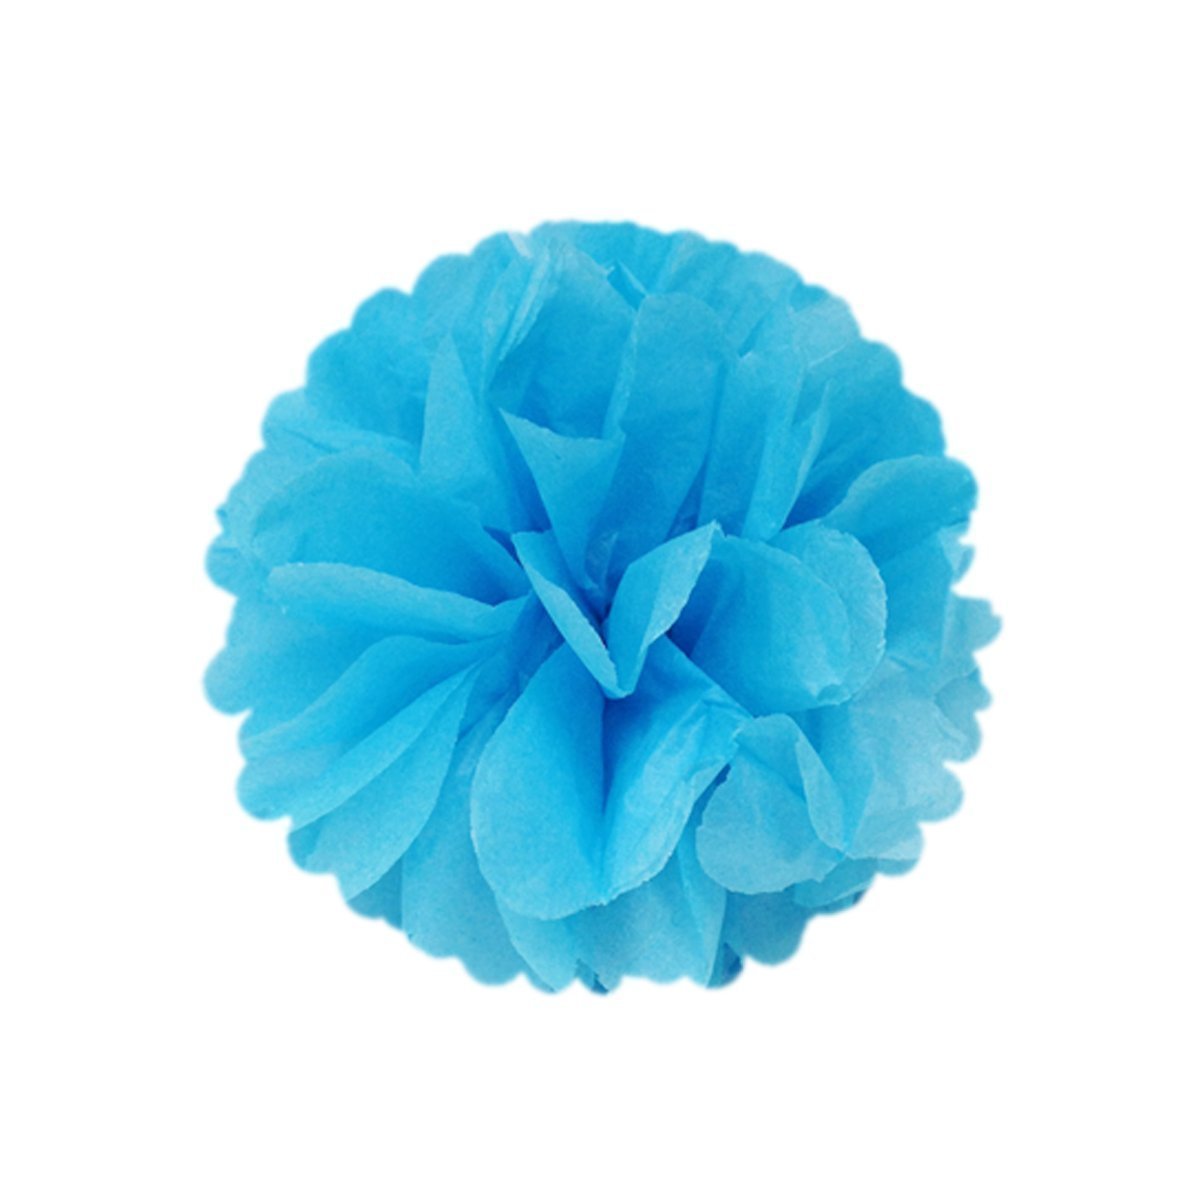 Wrapables Set of 21 Tissue Honeycomb Ball and Pom Pom Party Decorations, Blue/ Light Blue/ Aqua/ White